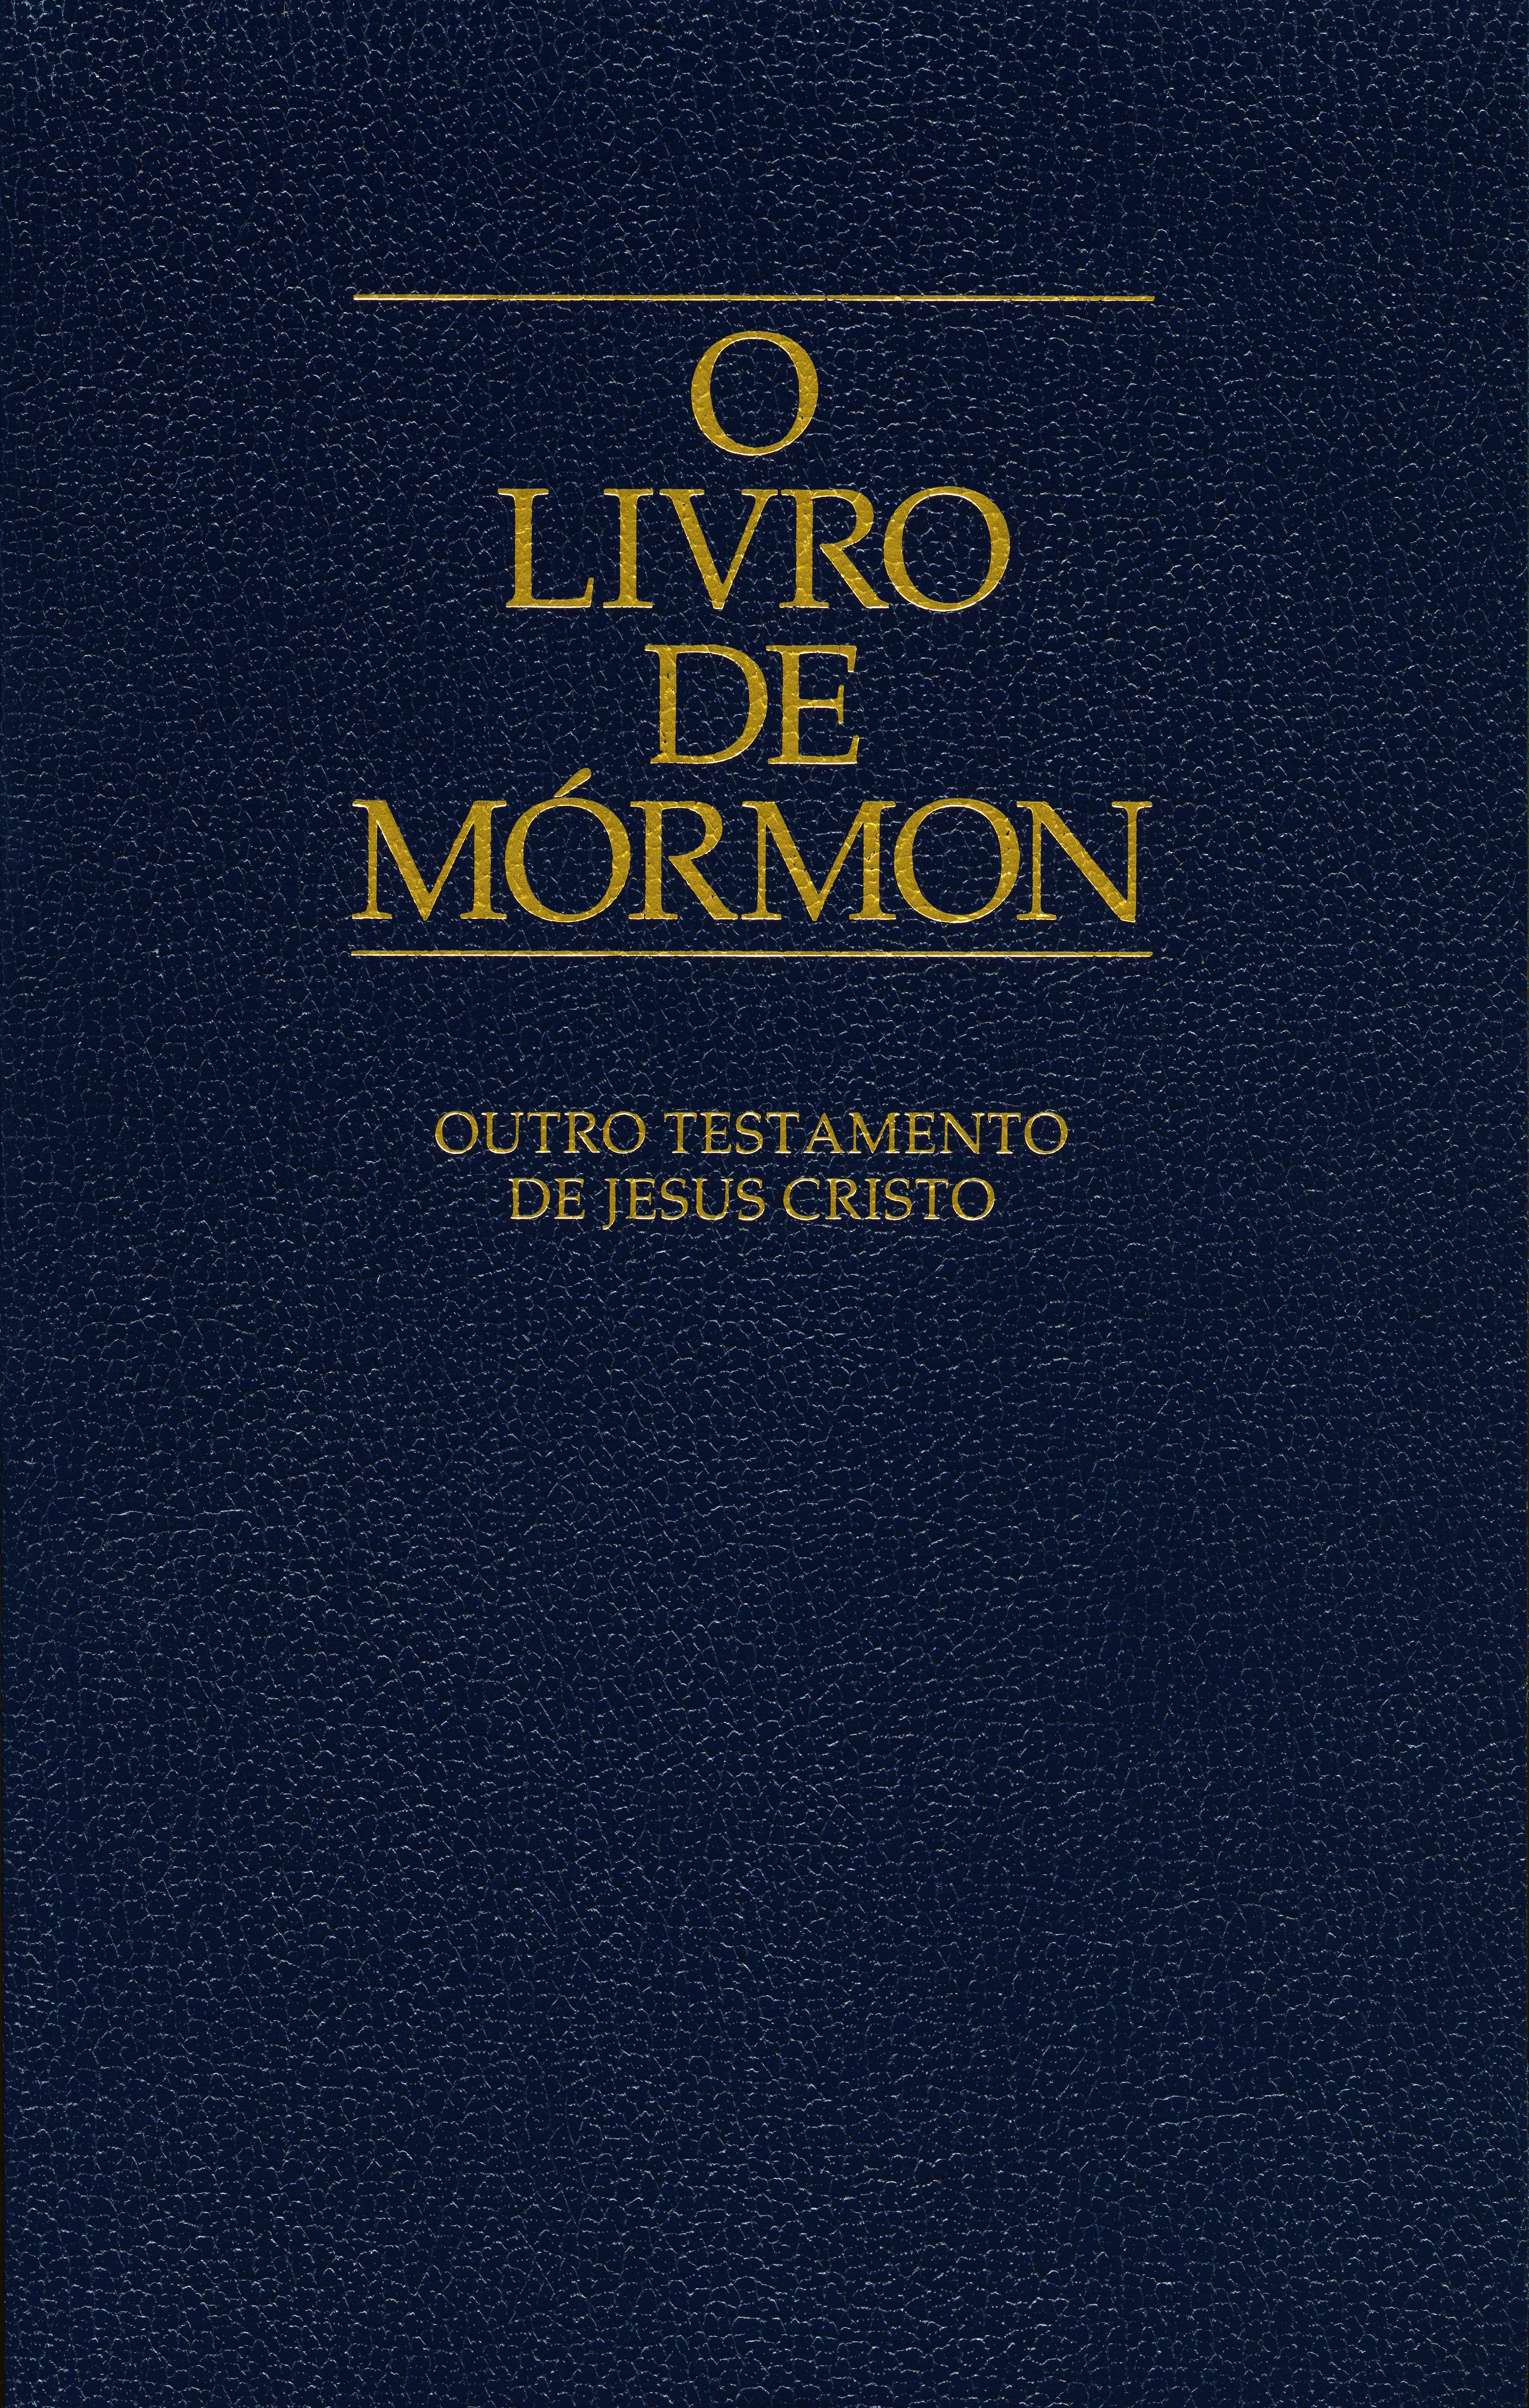 Book of Mormon Languages Quiz!